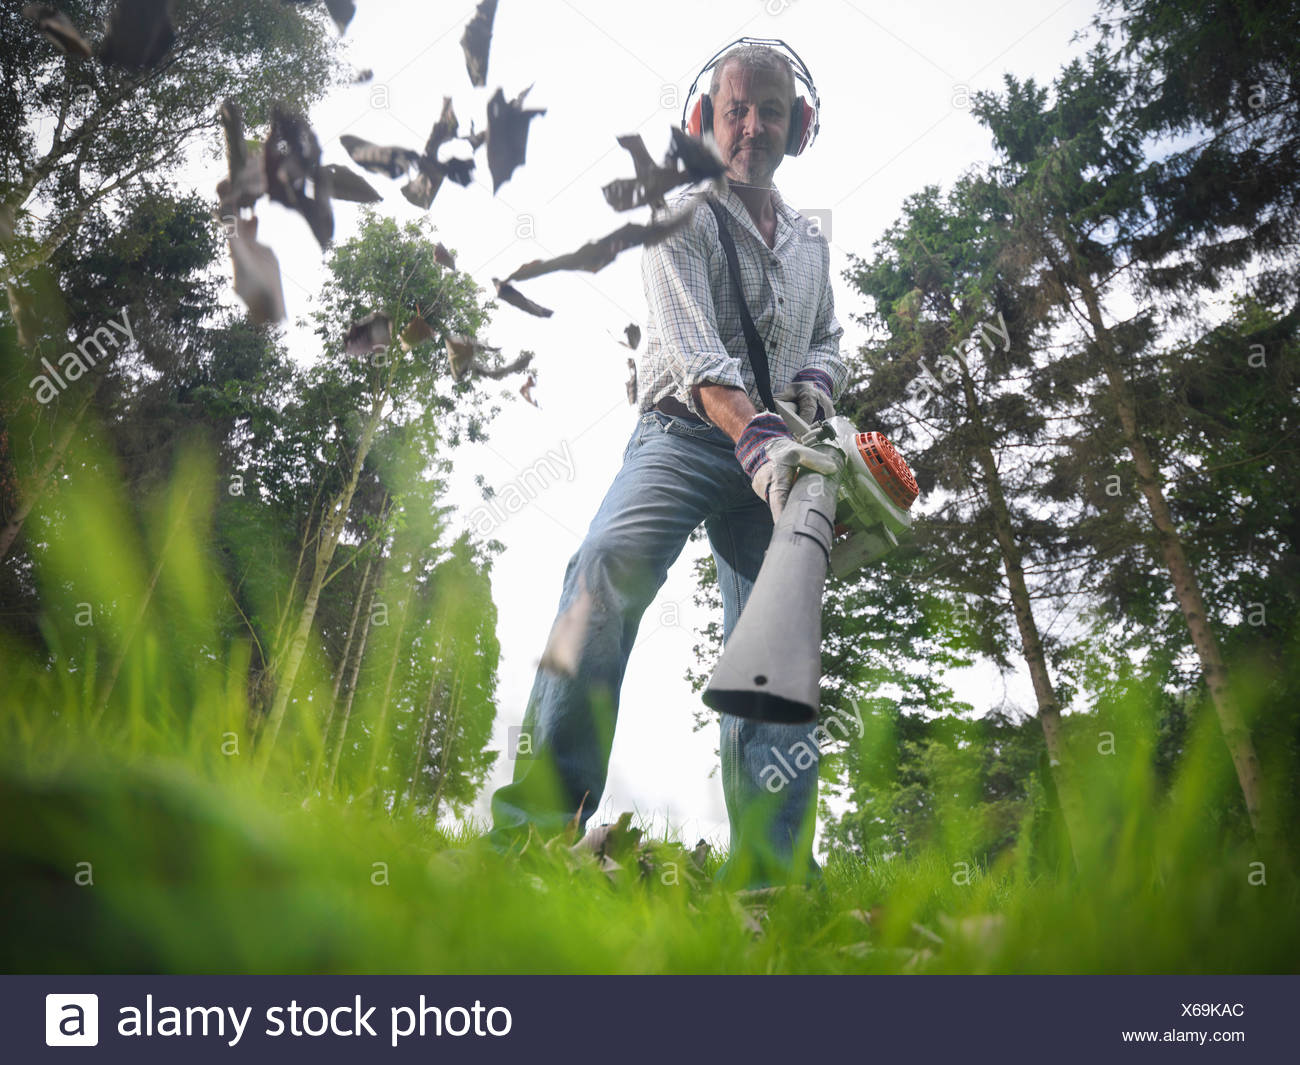 Man blowing leaves on grassy lawn - Stock Image